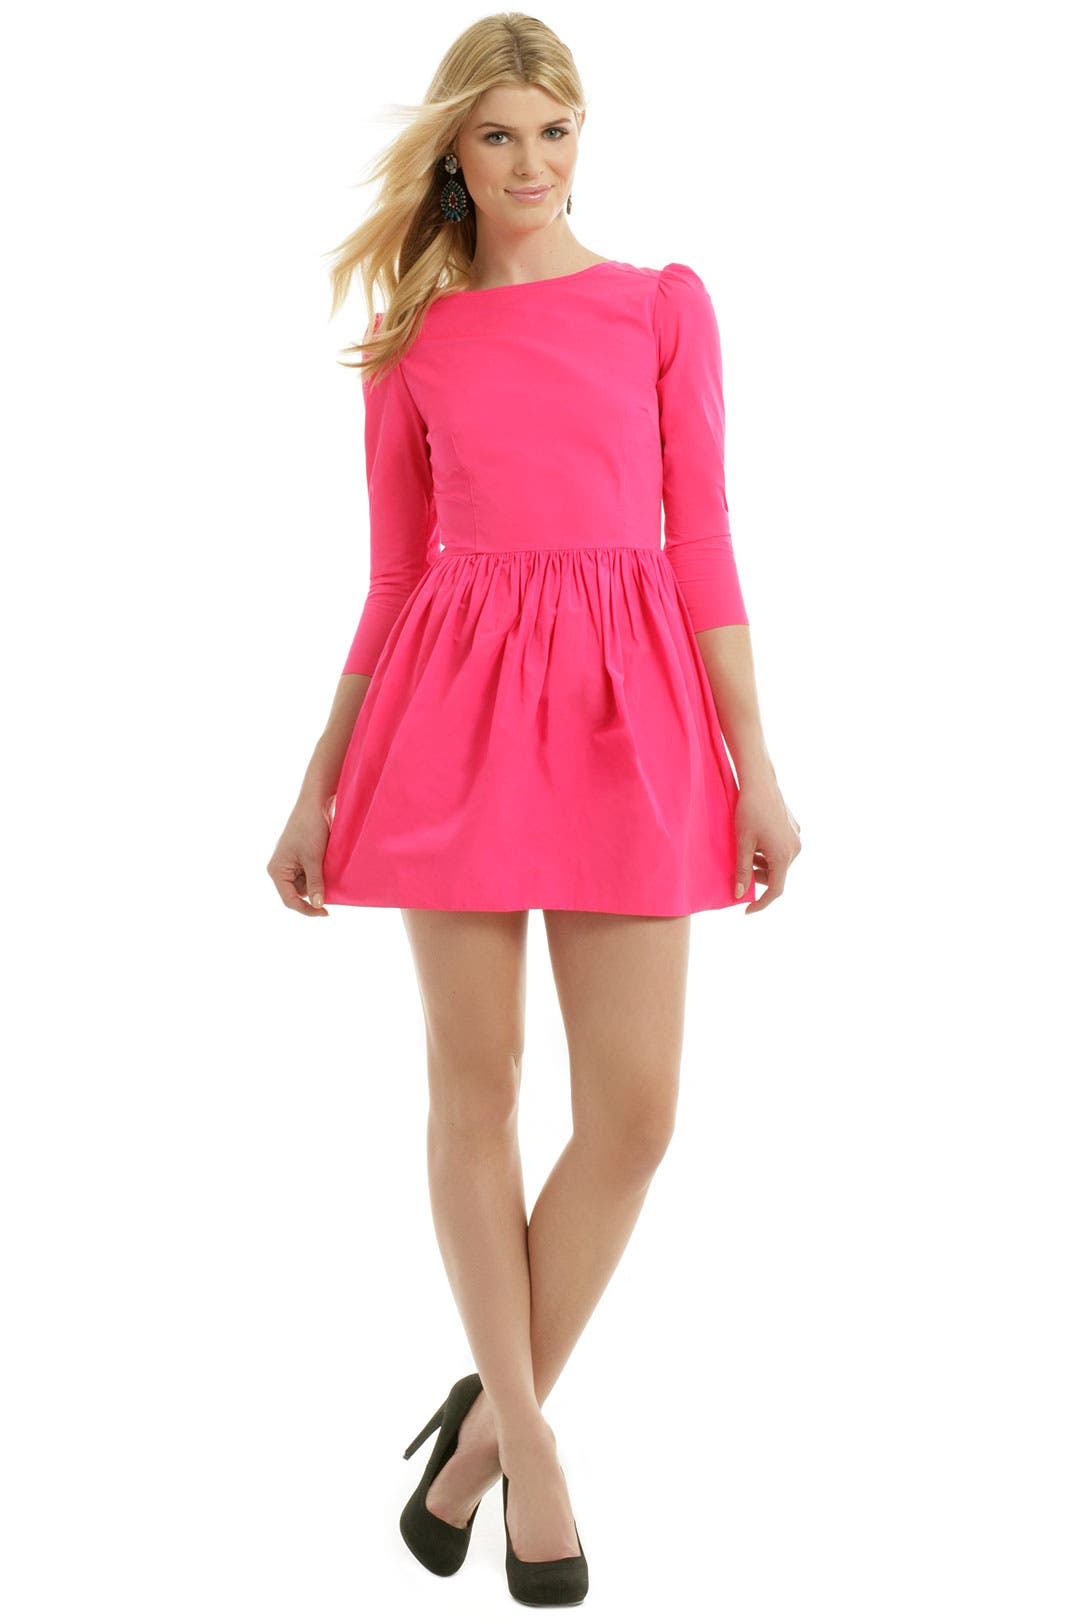 Electro Pink Explosion Dress by Suno